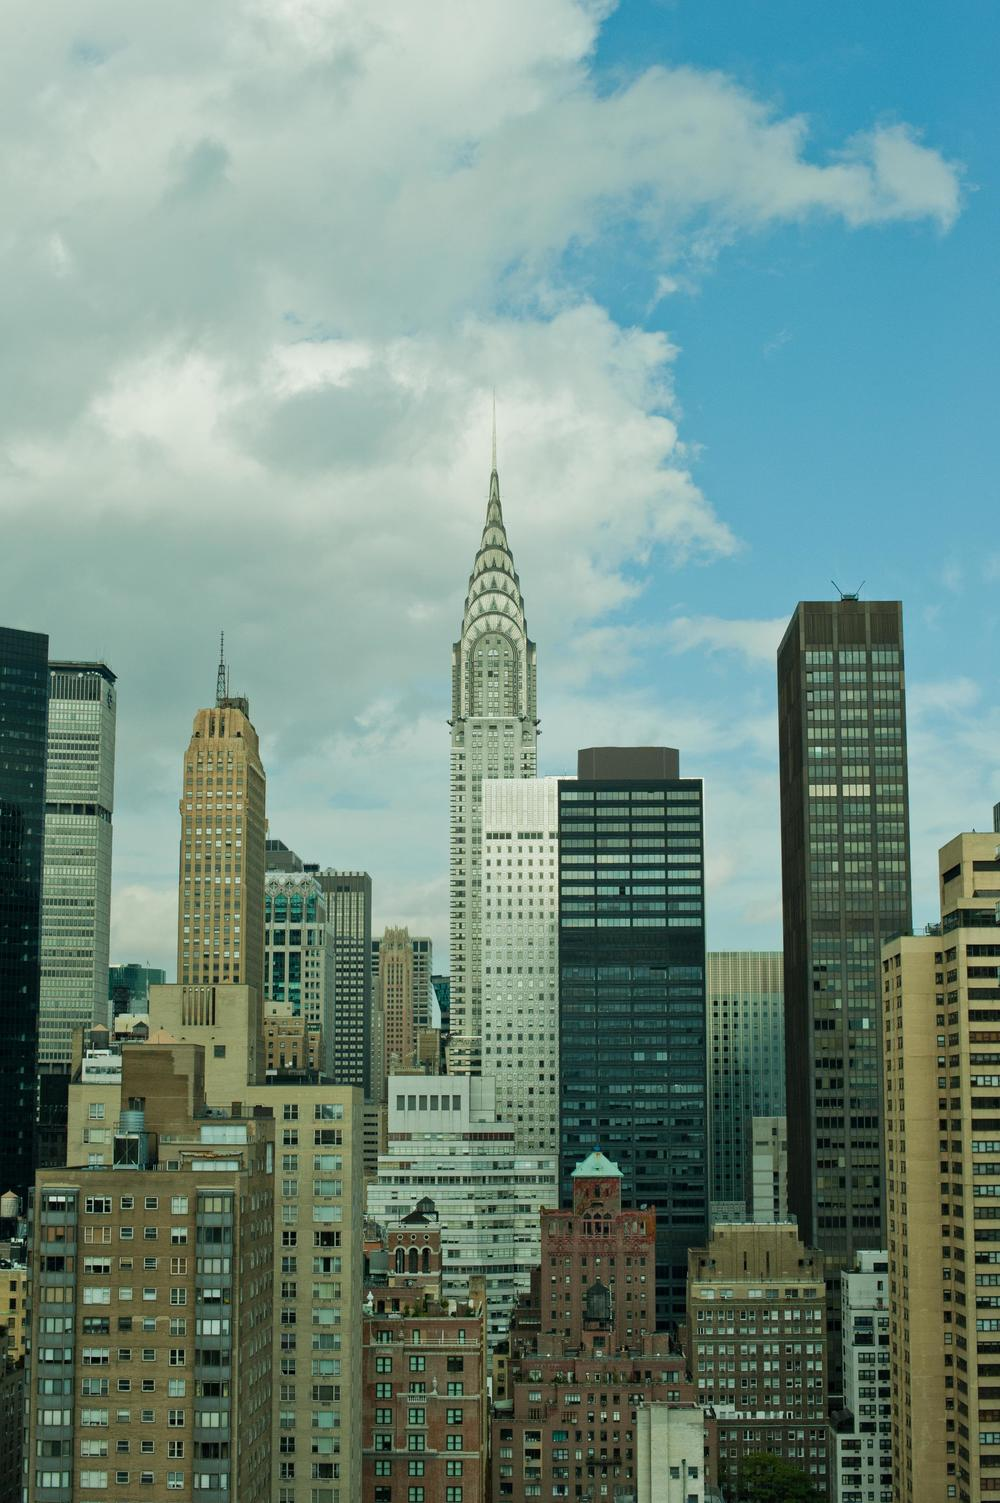 cityscape-new-york-city-chrysler-building_23479779185_o.jpg